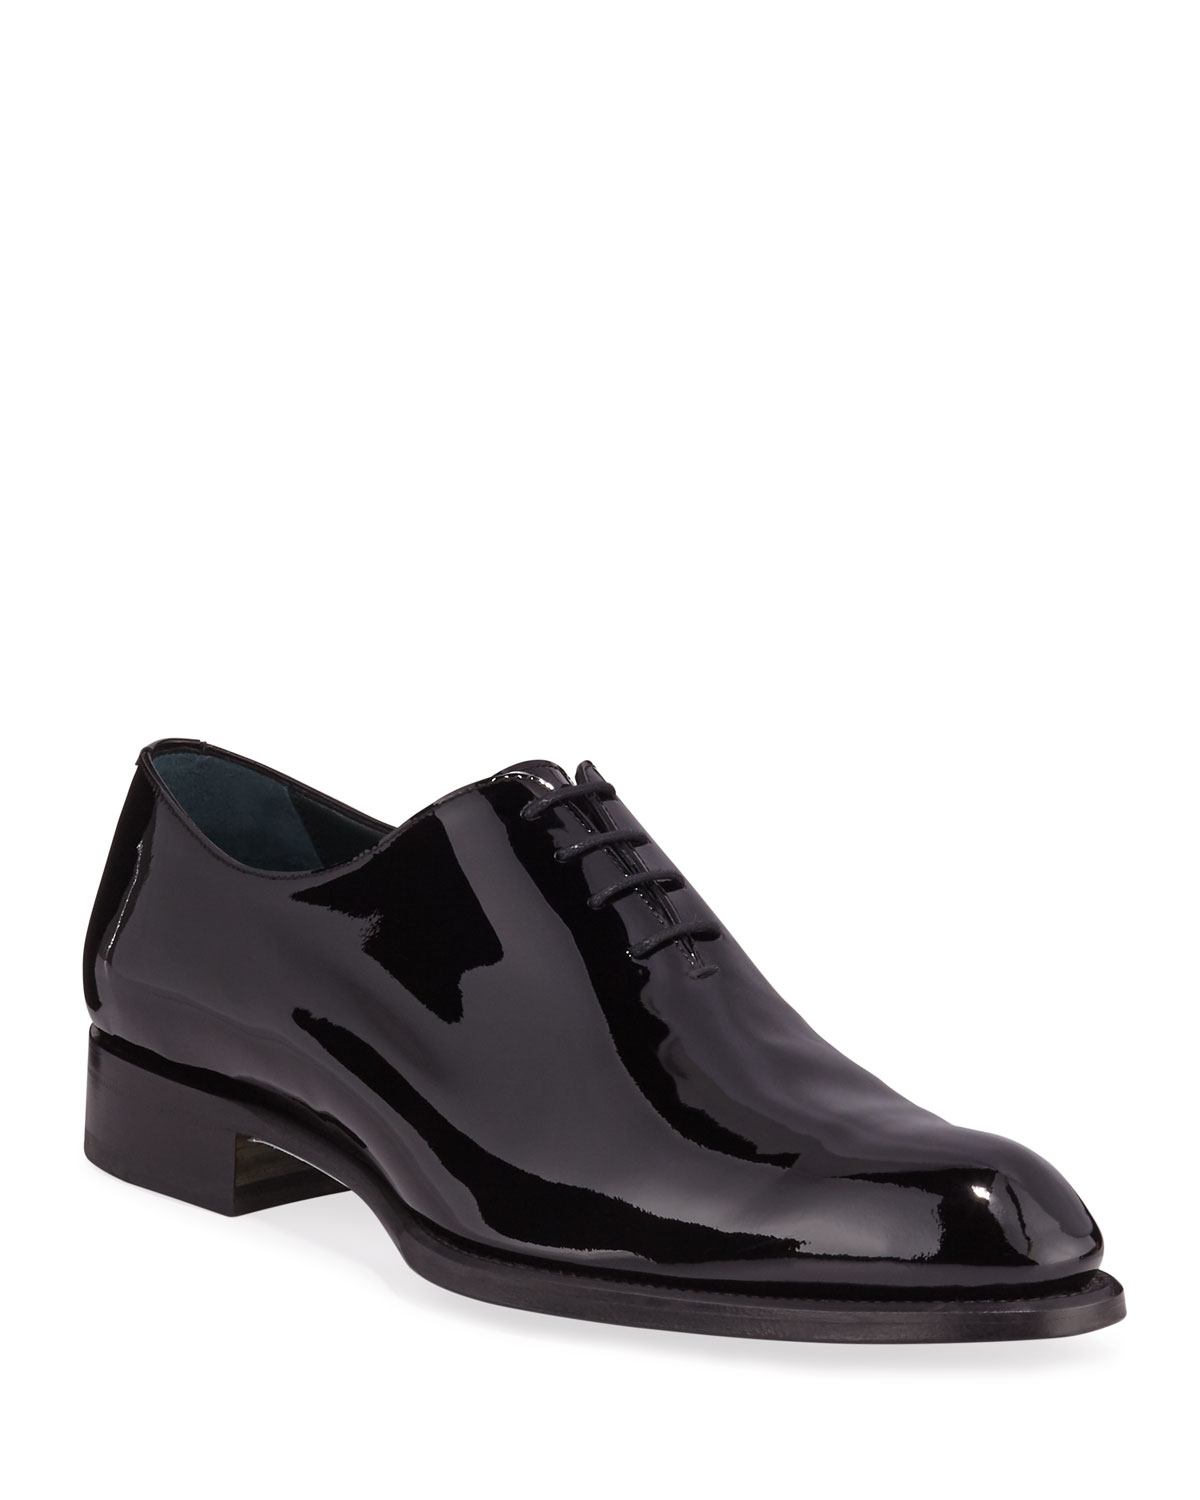 Brioni Dresses MEN'S CARDINAL WHOLE-CUT PATENT LEATHER DRESS SHOES